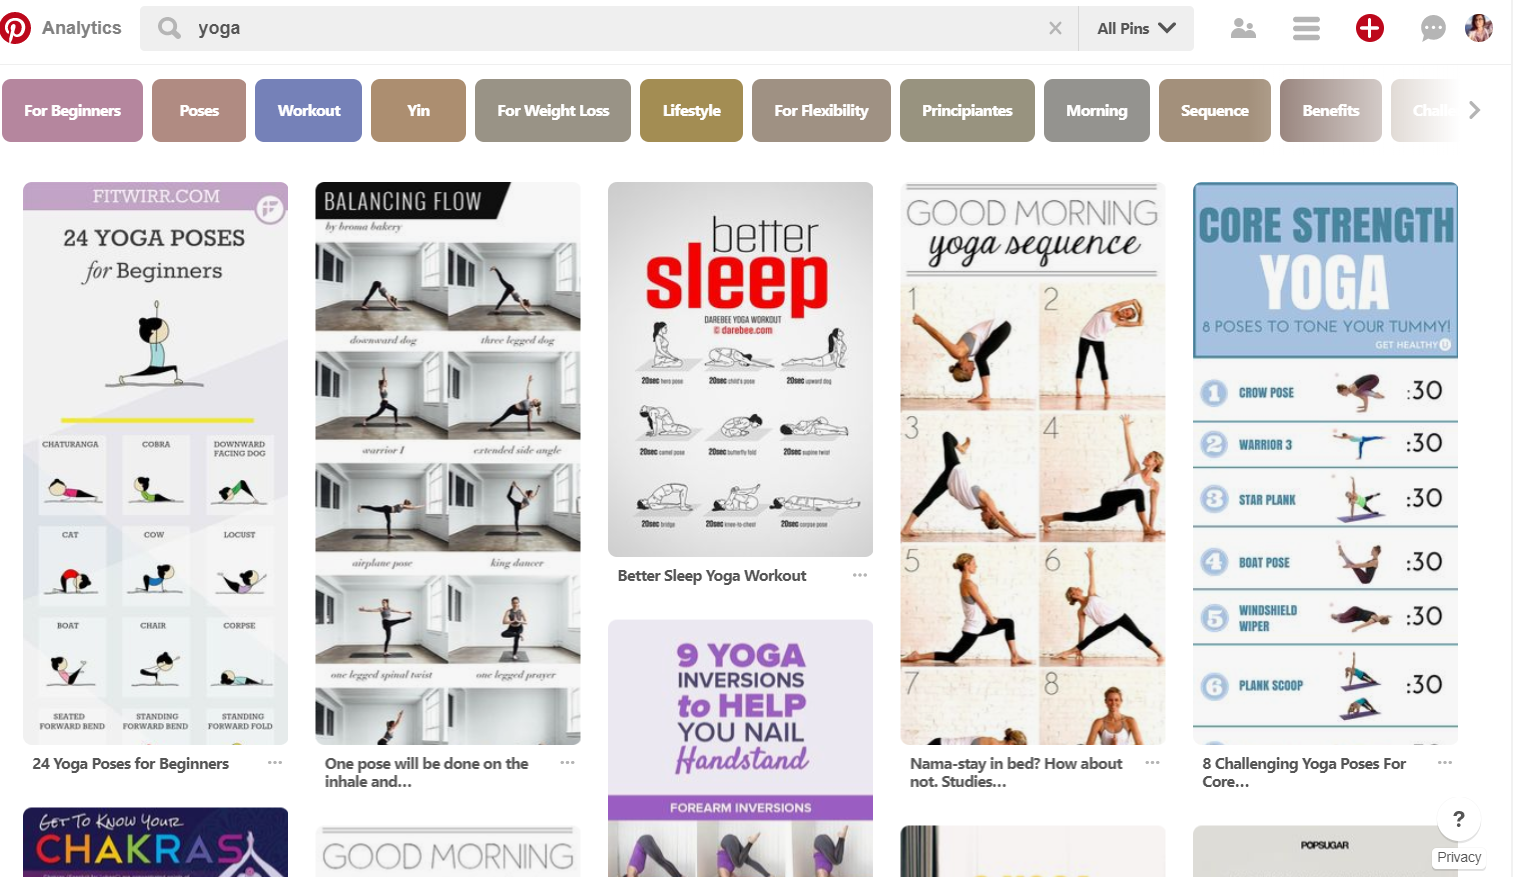 Learn how to use Pinterest to inspire others to practice yoga & grow your business at the same time | Plus free list of 100 yoga board ideas. Read more at www.monicabadiu.com